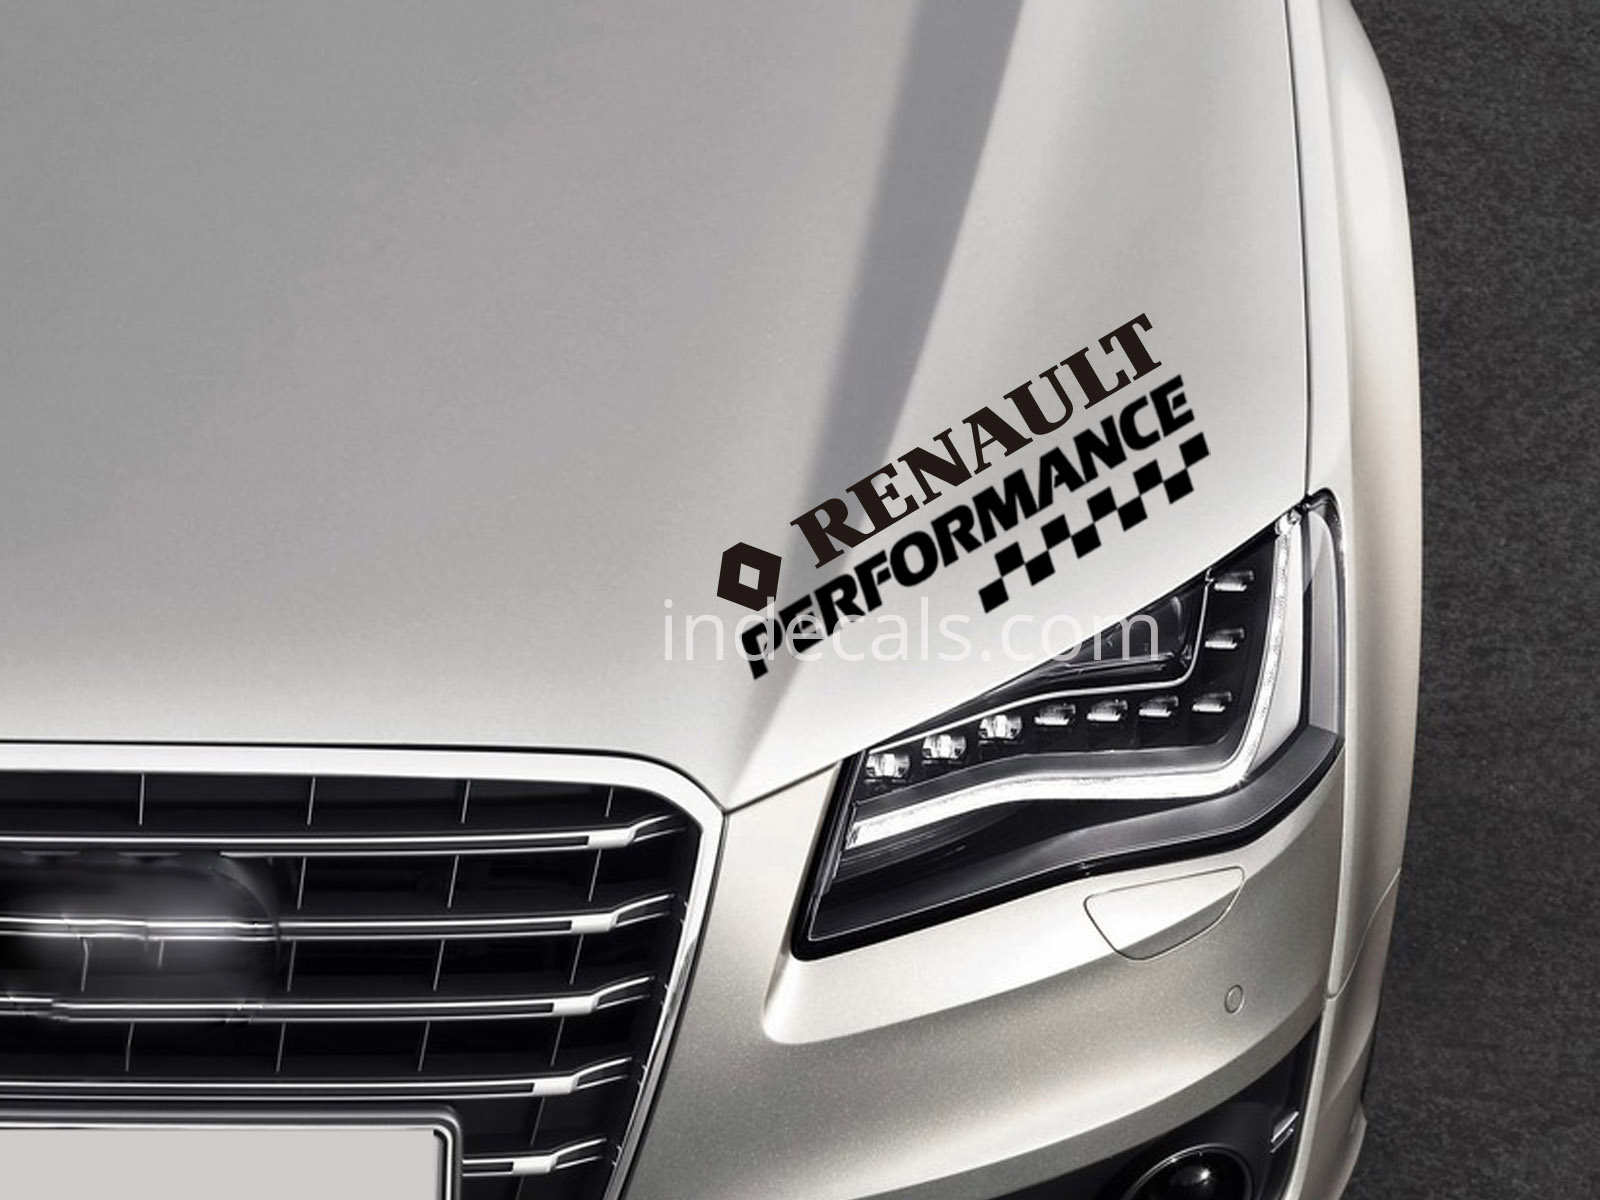 1 x Renault Performance Sticker - Black